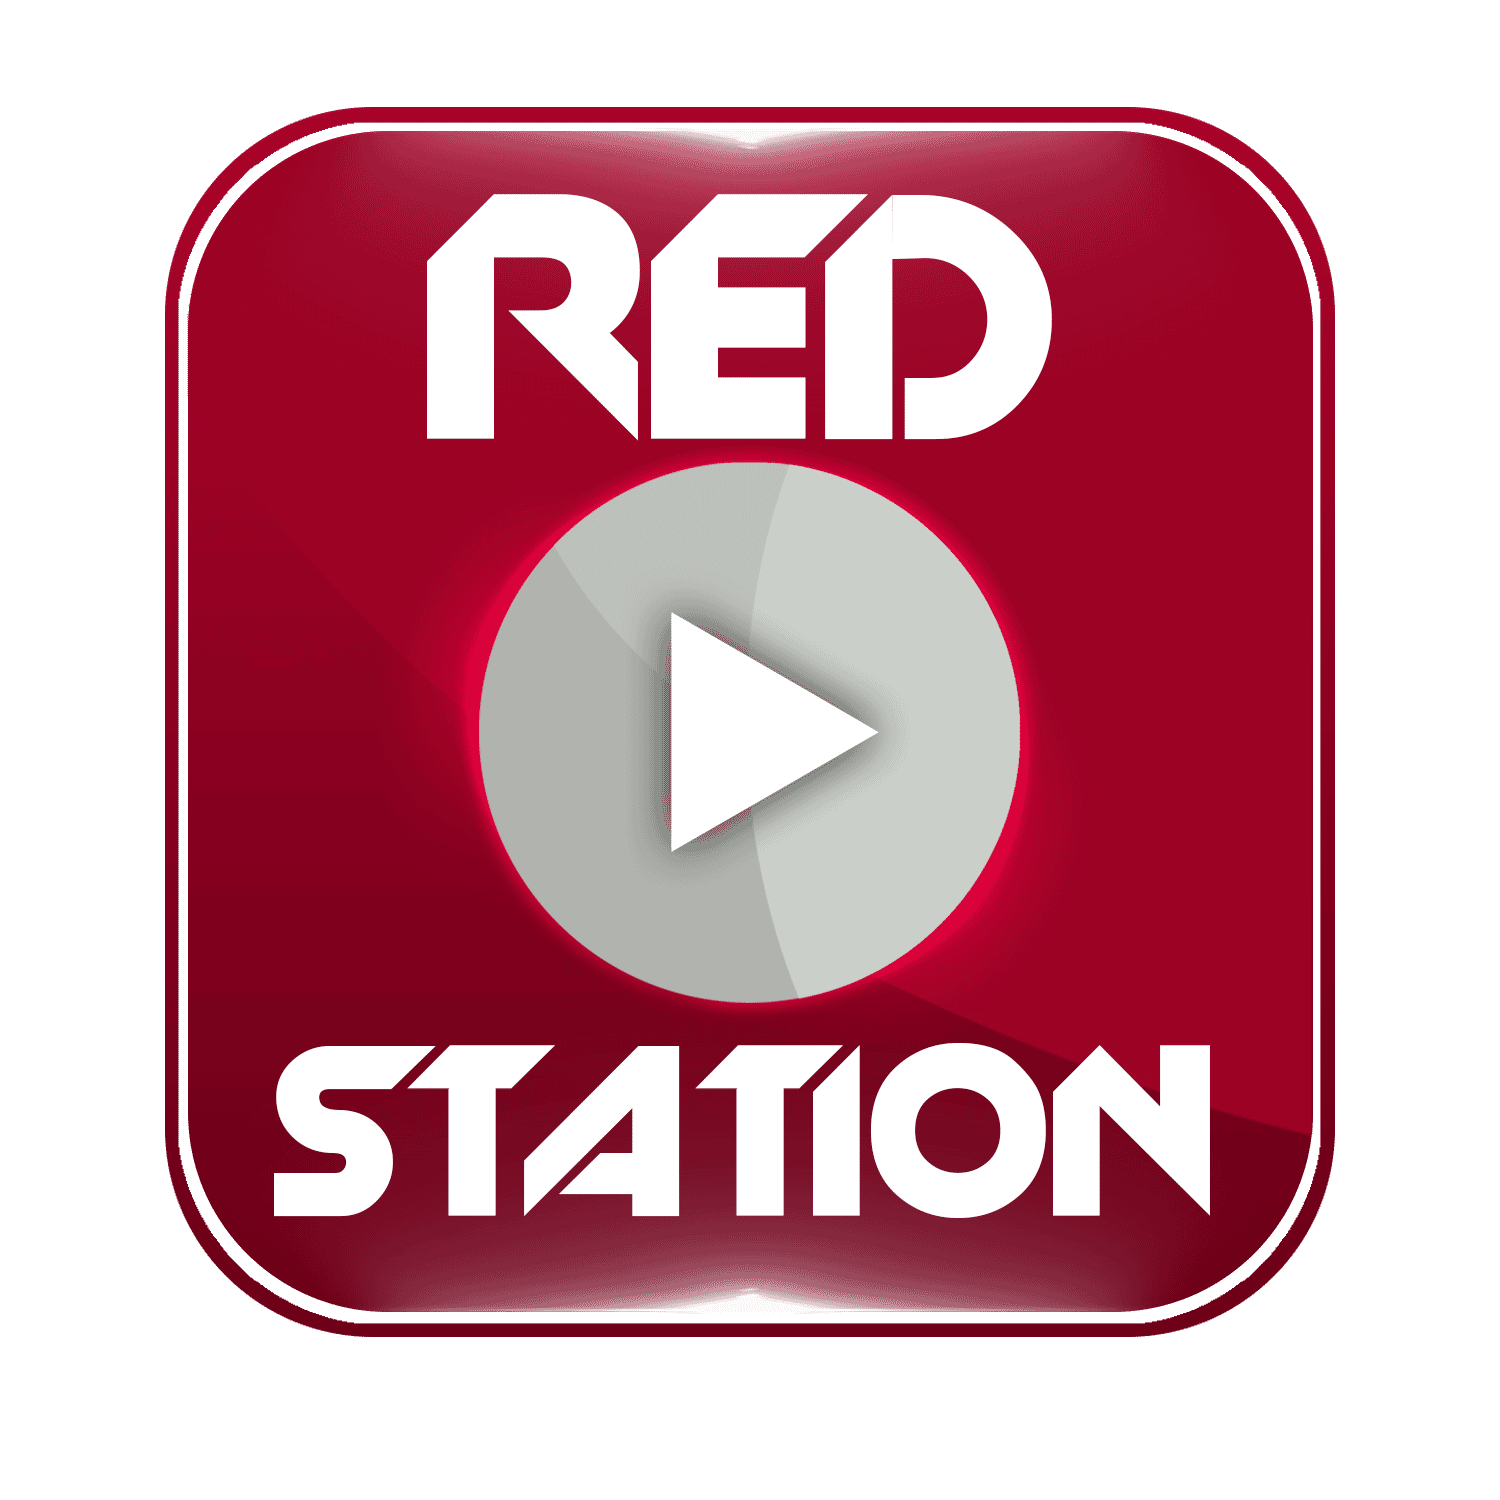 Ecouter Red Station